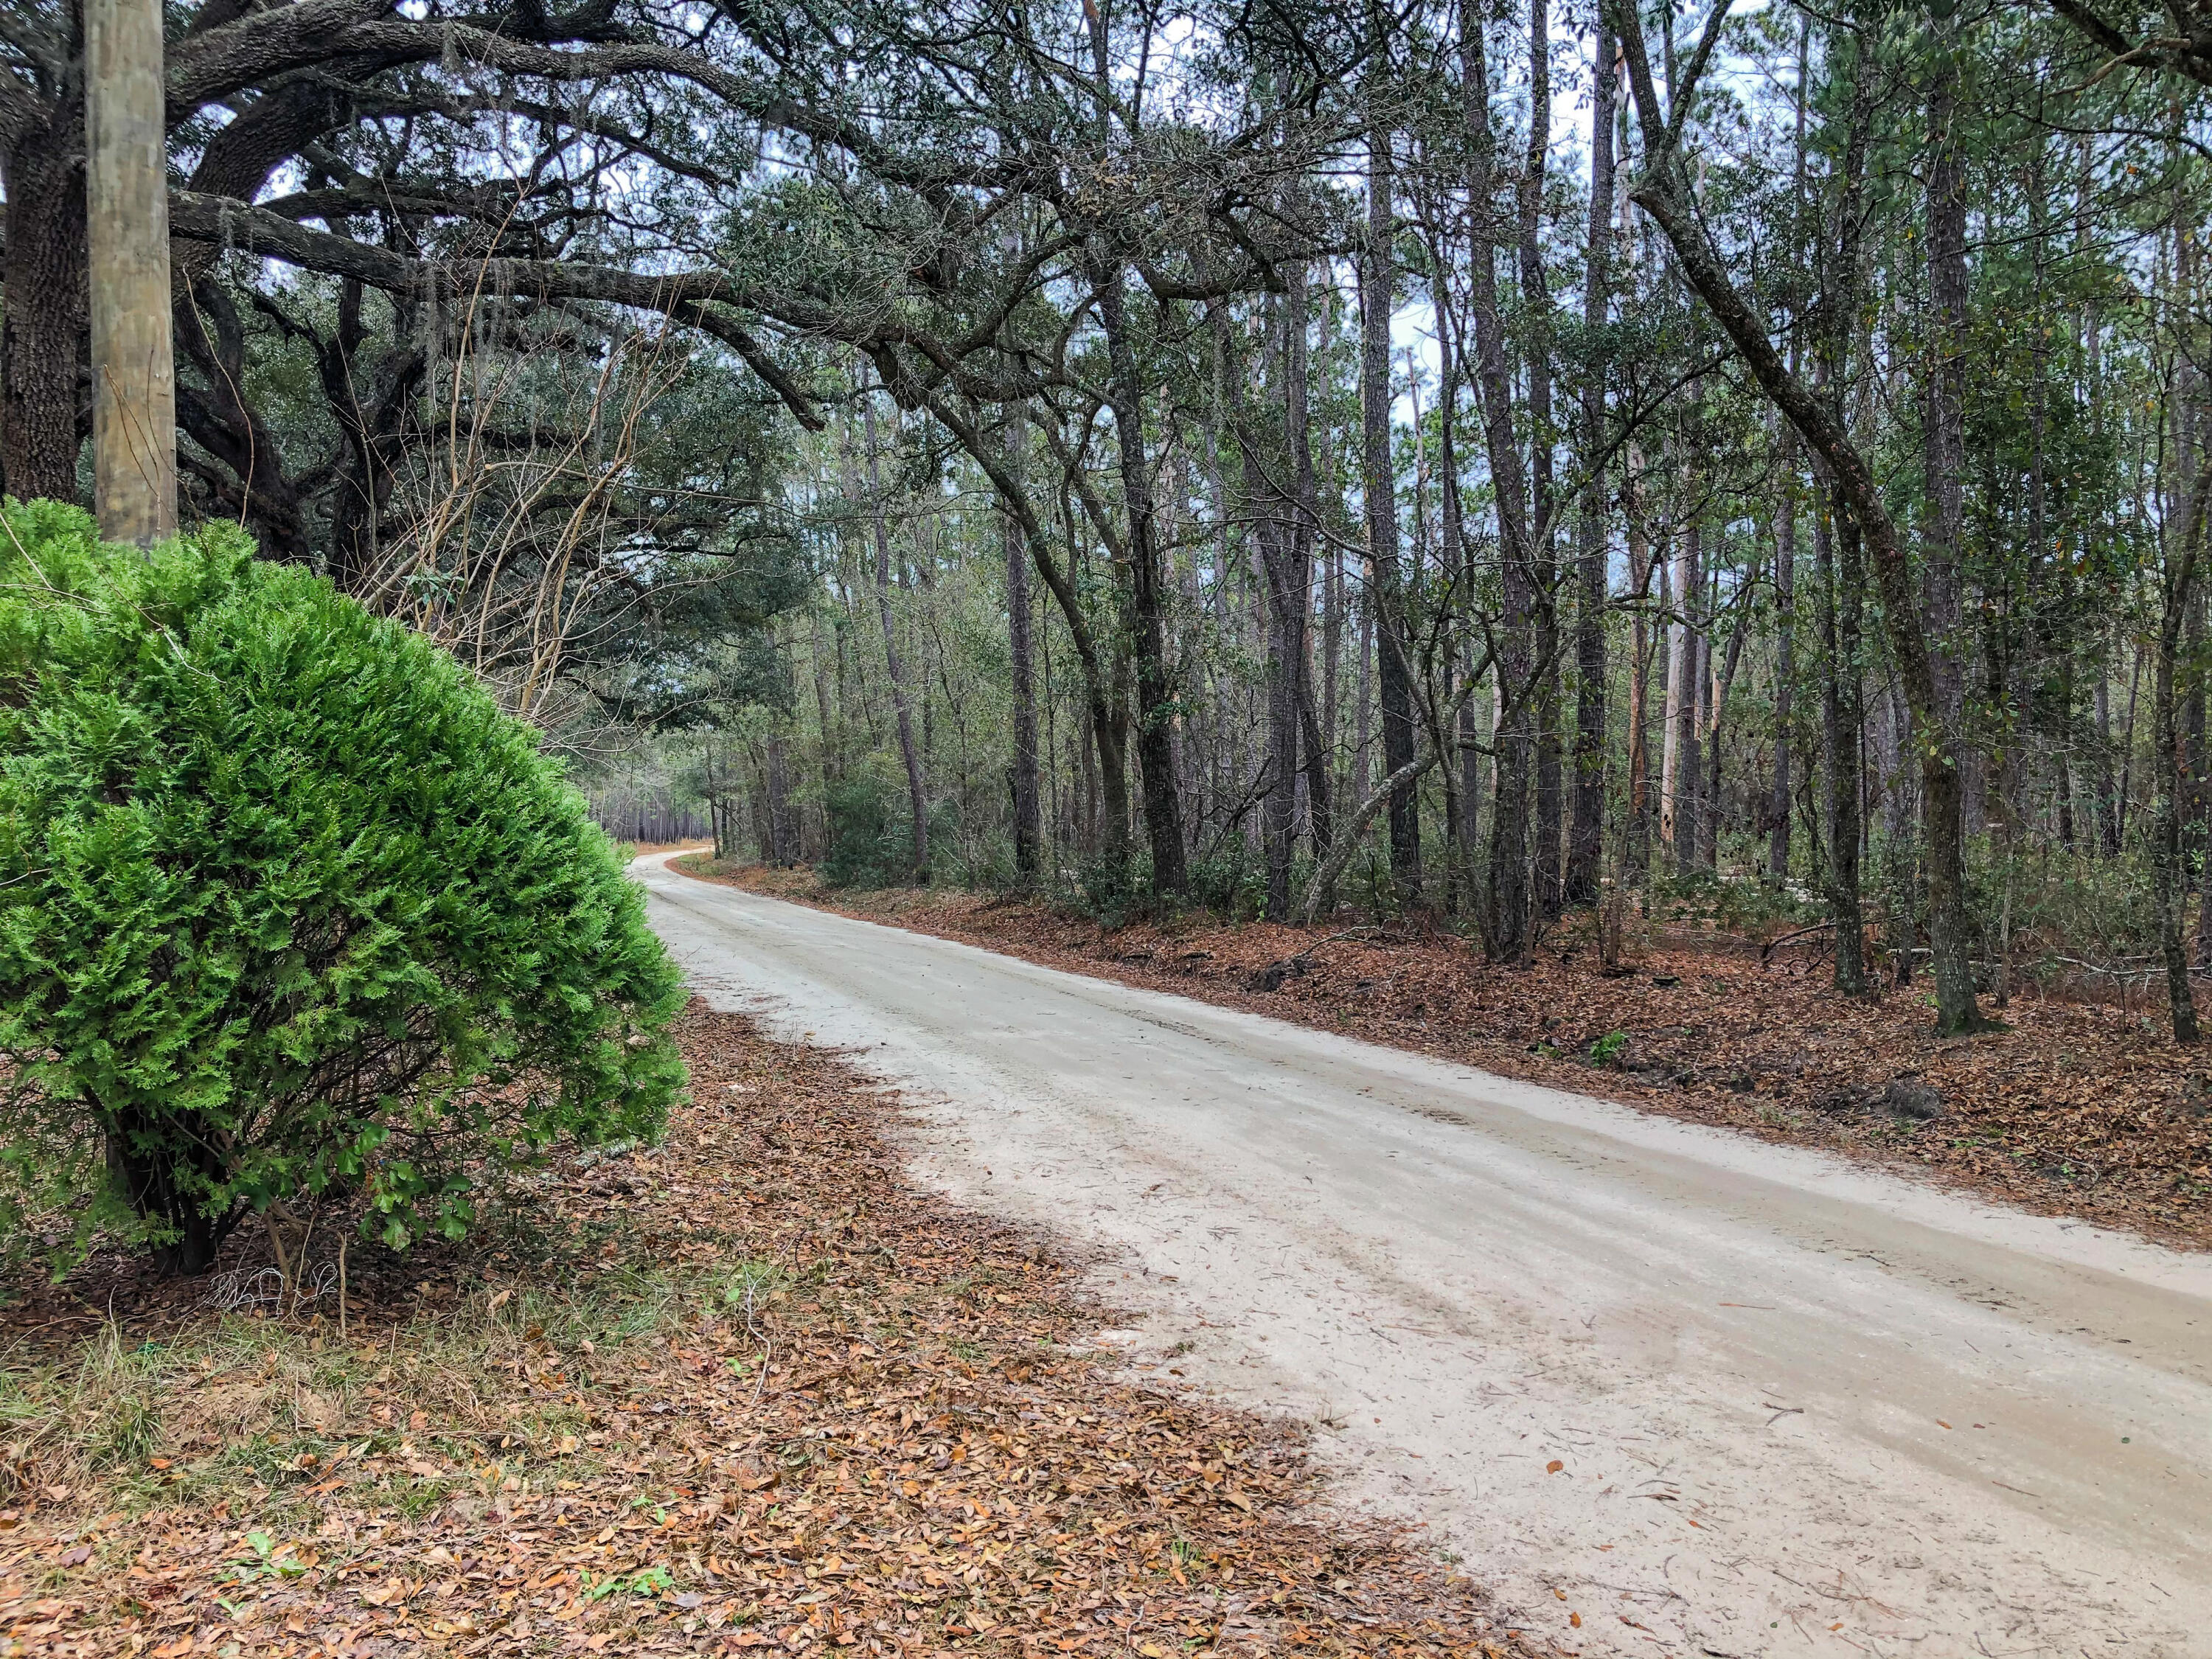 Large homesite with two sides bordering the Francis Marion Forest.  Approximately one acre, this property is on an unpaved stretch of Old Georgetown Road, once known as the King's Highway that is listed on the National Register of Historic Places. This lot is perfect for a remote cabin, hunt camp, or country get-a-way.  Less than 5 miles from the Village of McClellanville's shops, restaurants, and boat launch with easy access to beaches and waterways of Cape Romain and Bulls Bay.  A well and septic are on premises but Seller makes no claims as to condition of either. If you love the outdoors and the natural beauty of the Lowcountry, this property is a must-see. Come check out the amazing wildlife and nature that surrounds this rare find in the woods!